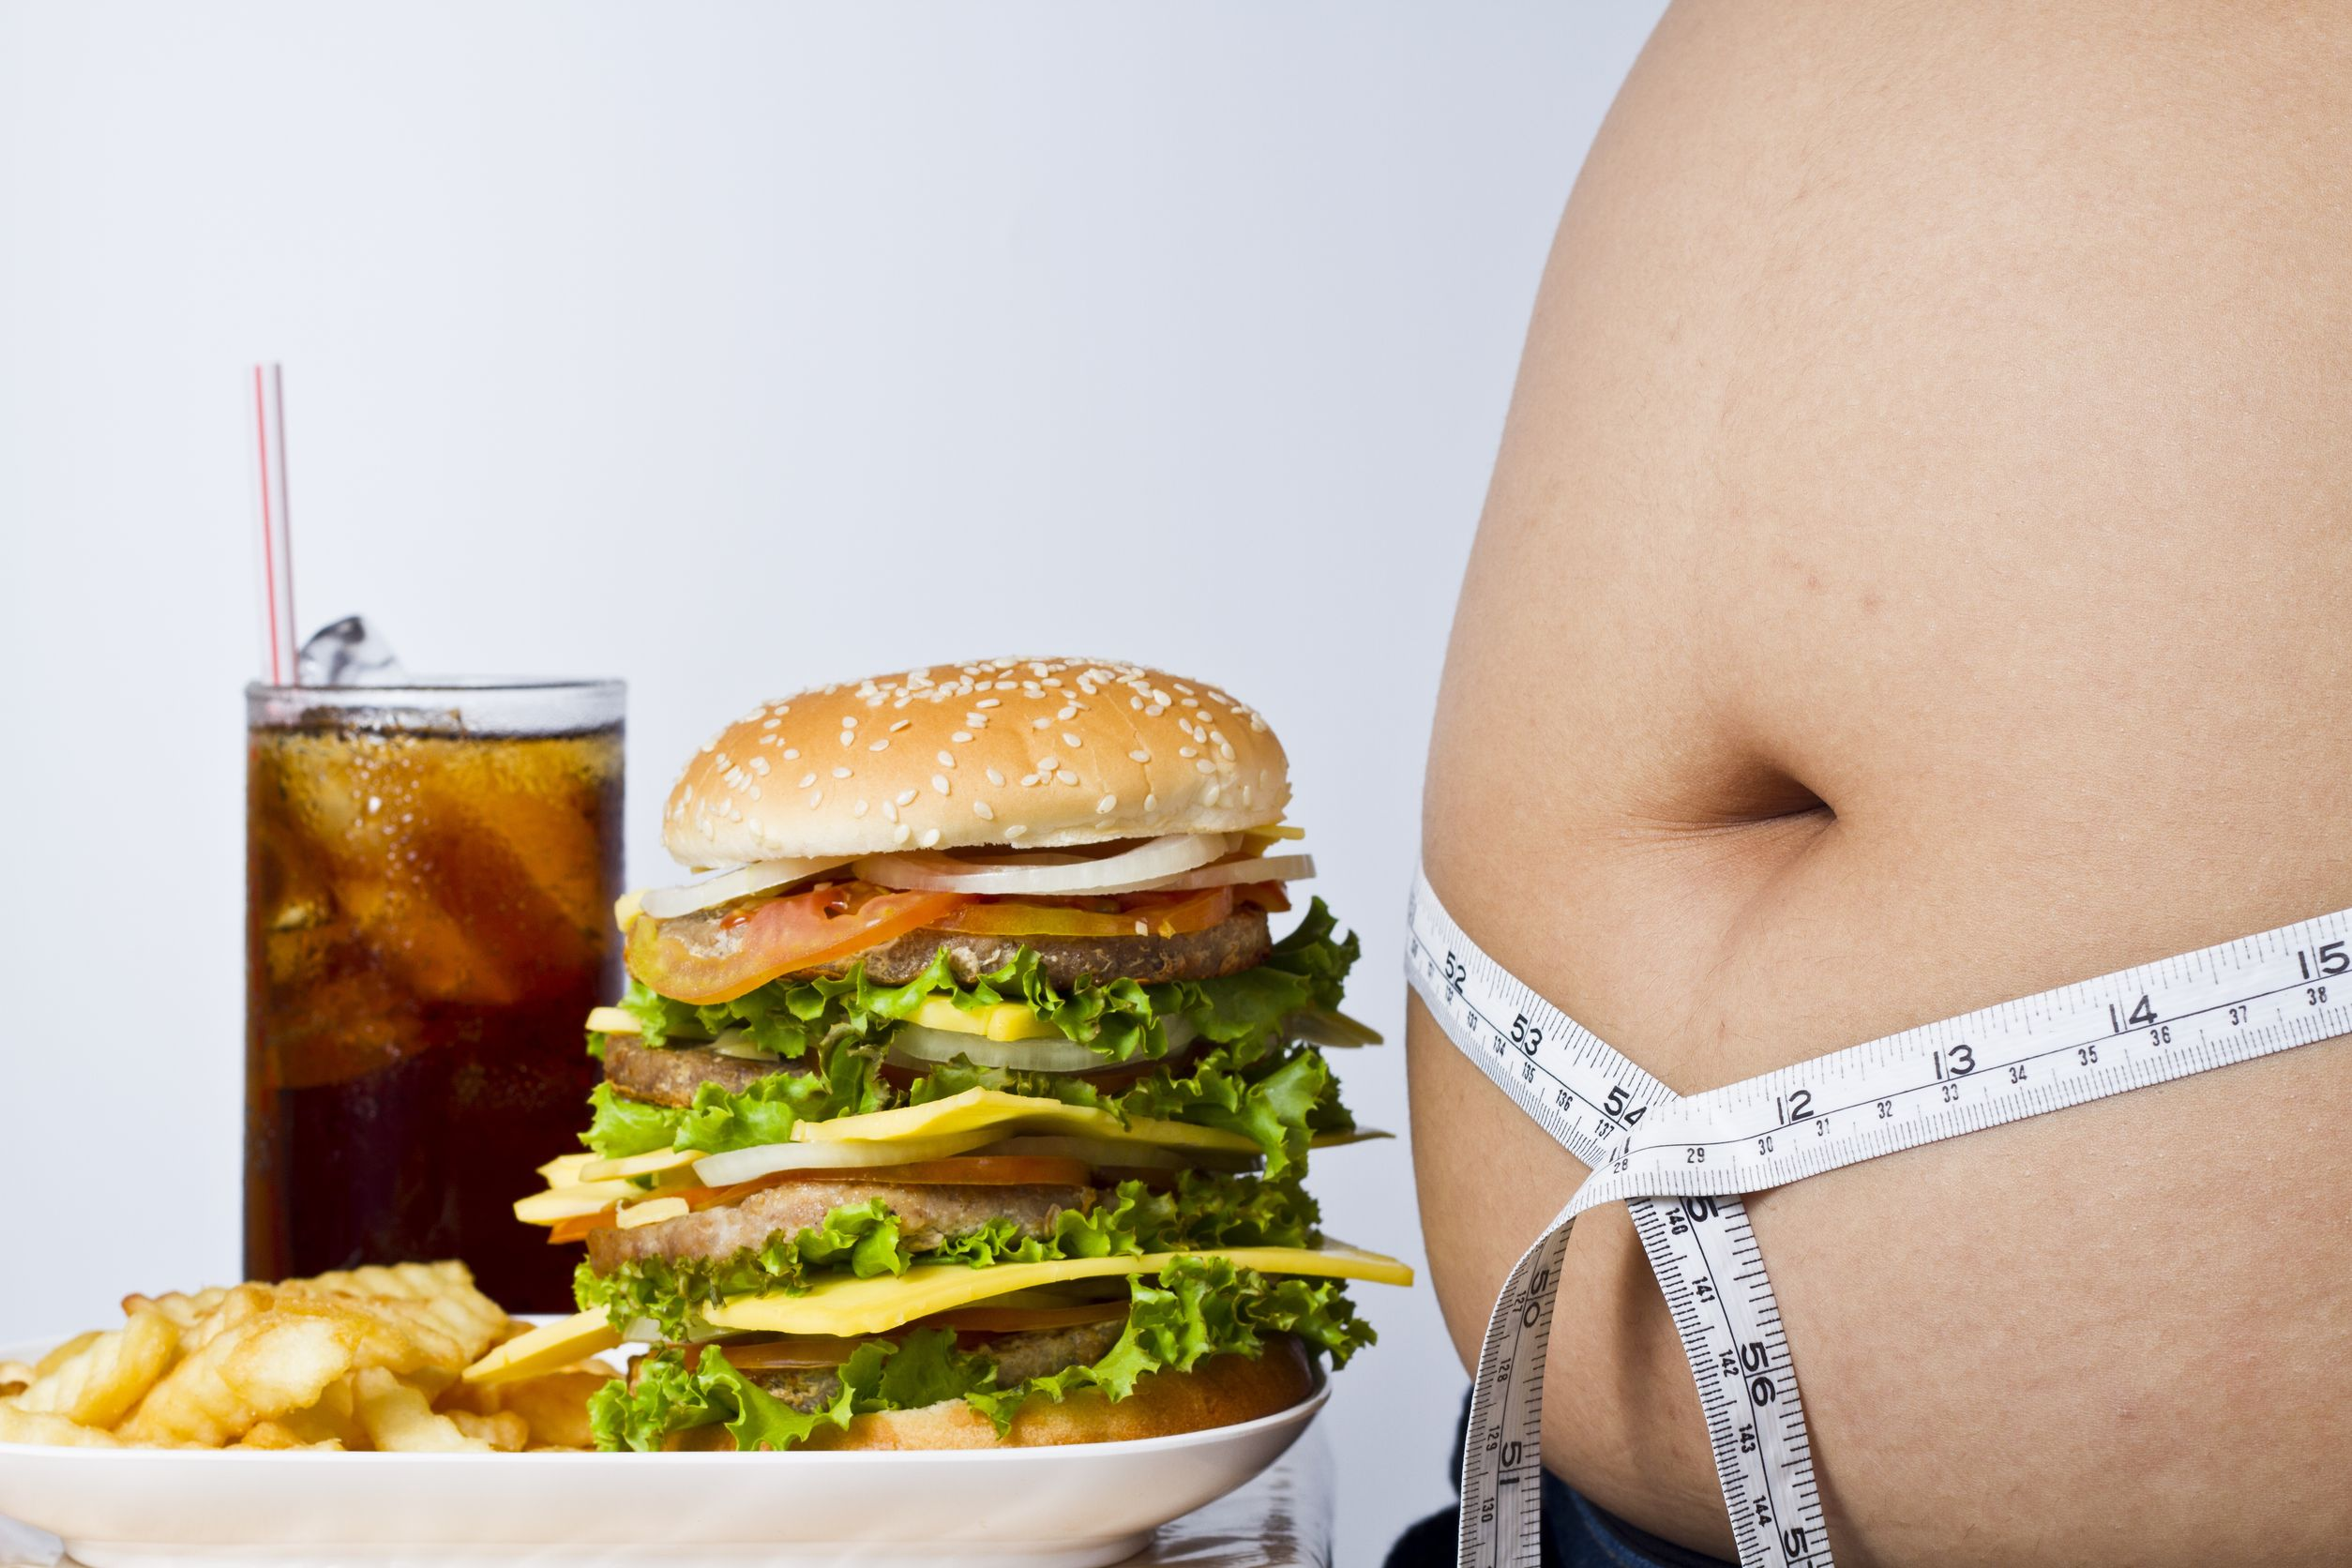 junk food leads to obesity essay Obesity junk food plays a major role in the obesity epidemic by the year 2050, the rate of obesity in the us is expected to reach 42 percent, according to researchers at harvard university.